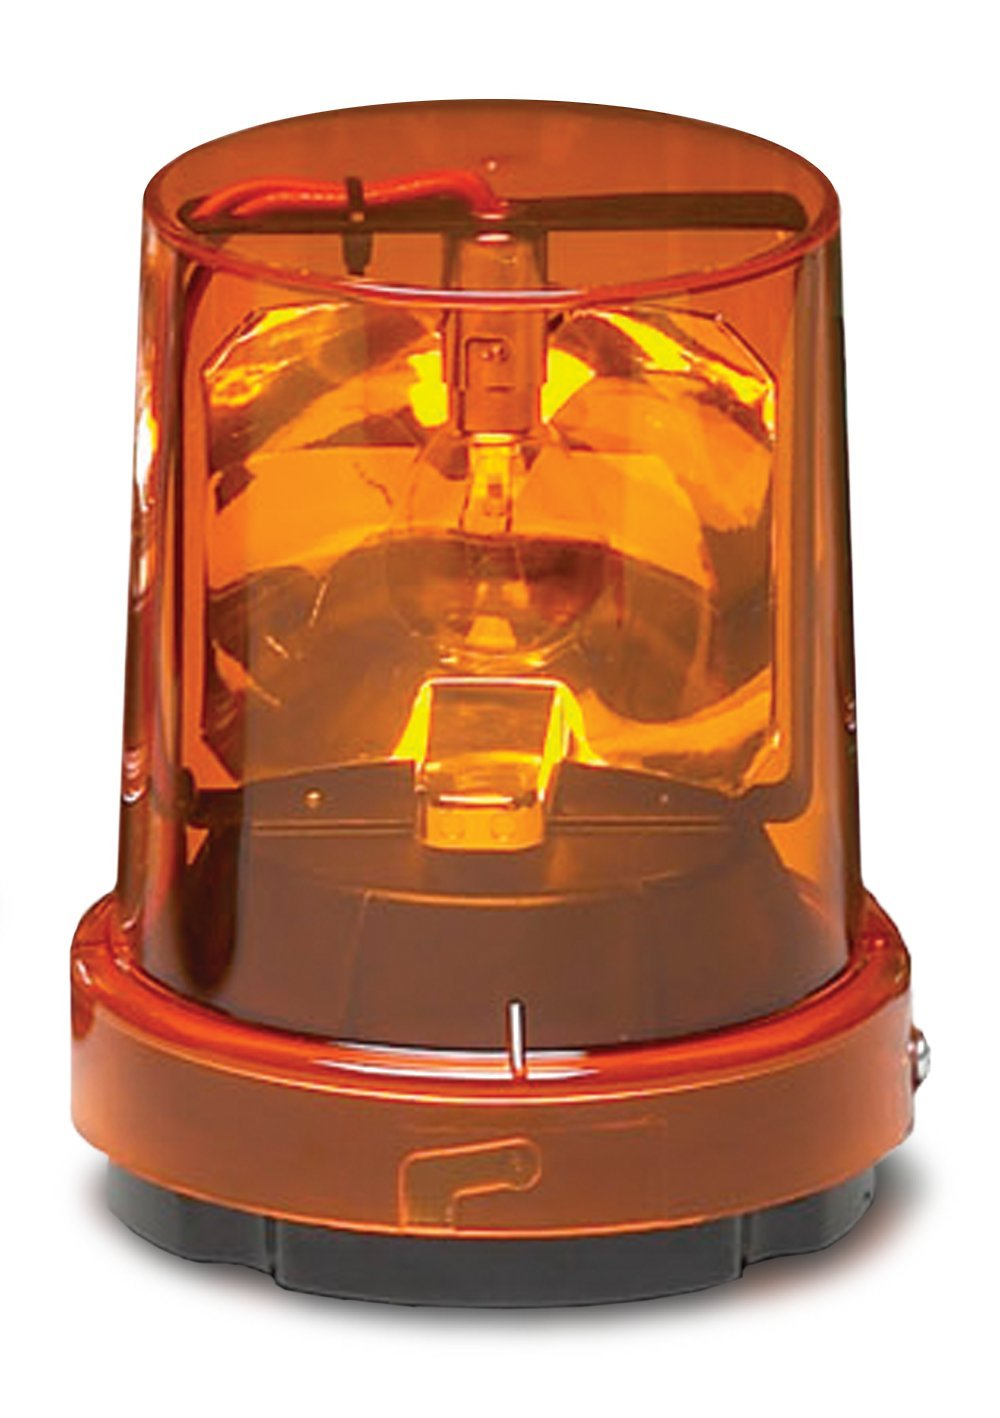 Federal Signal 121S-120A Amber Rotating Light by Federal Signal  B000LENBK6